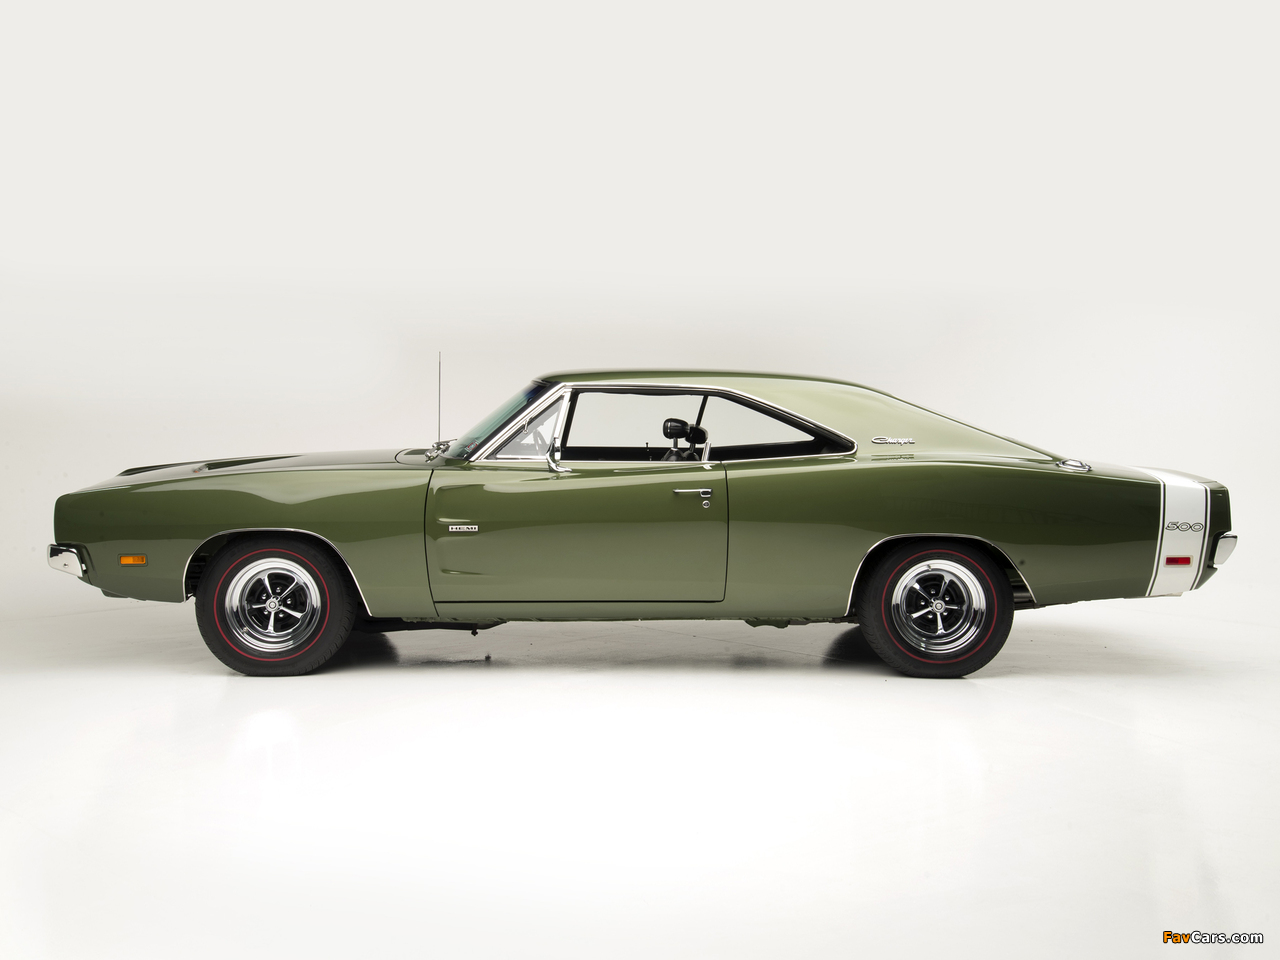 Dodge Charger 500 Hemi (XX29) 1969 pictures (1280 x 960)